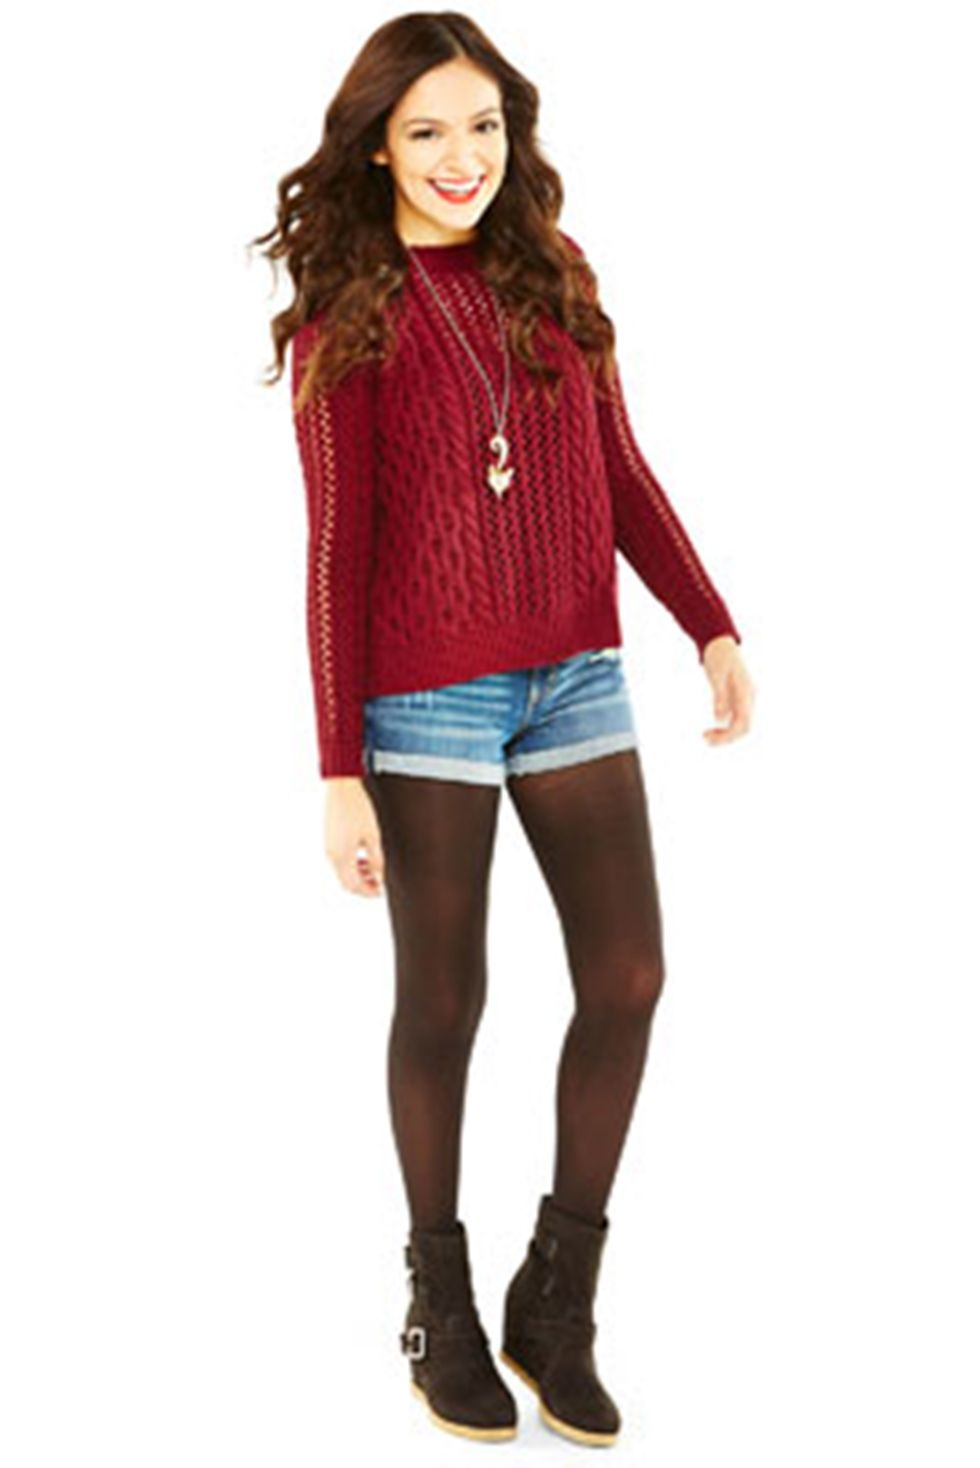 Teens Fashion Trends Google Search: Bethany Who Is Homeschooled And A Famous Youtuber And